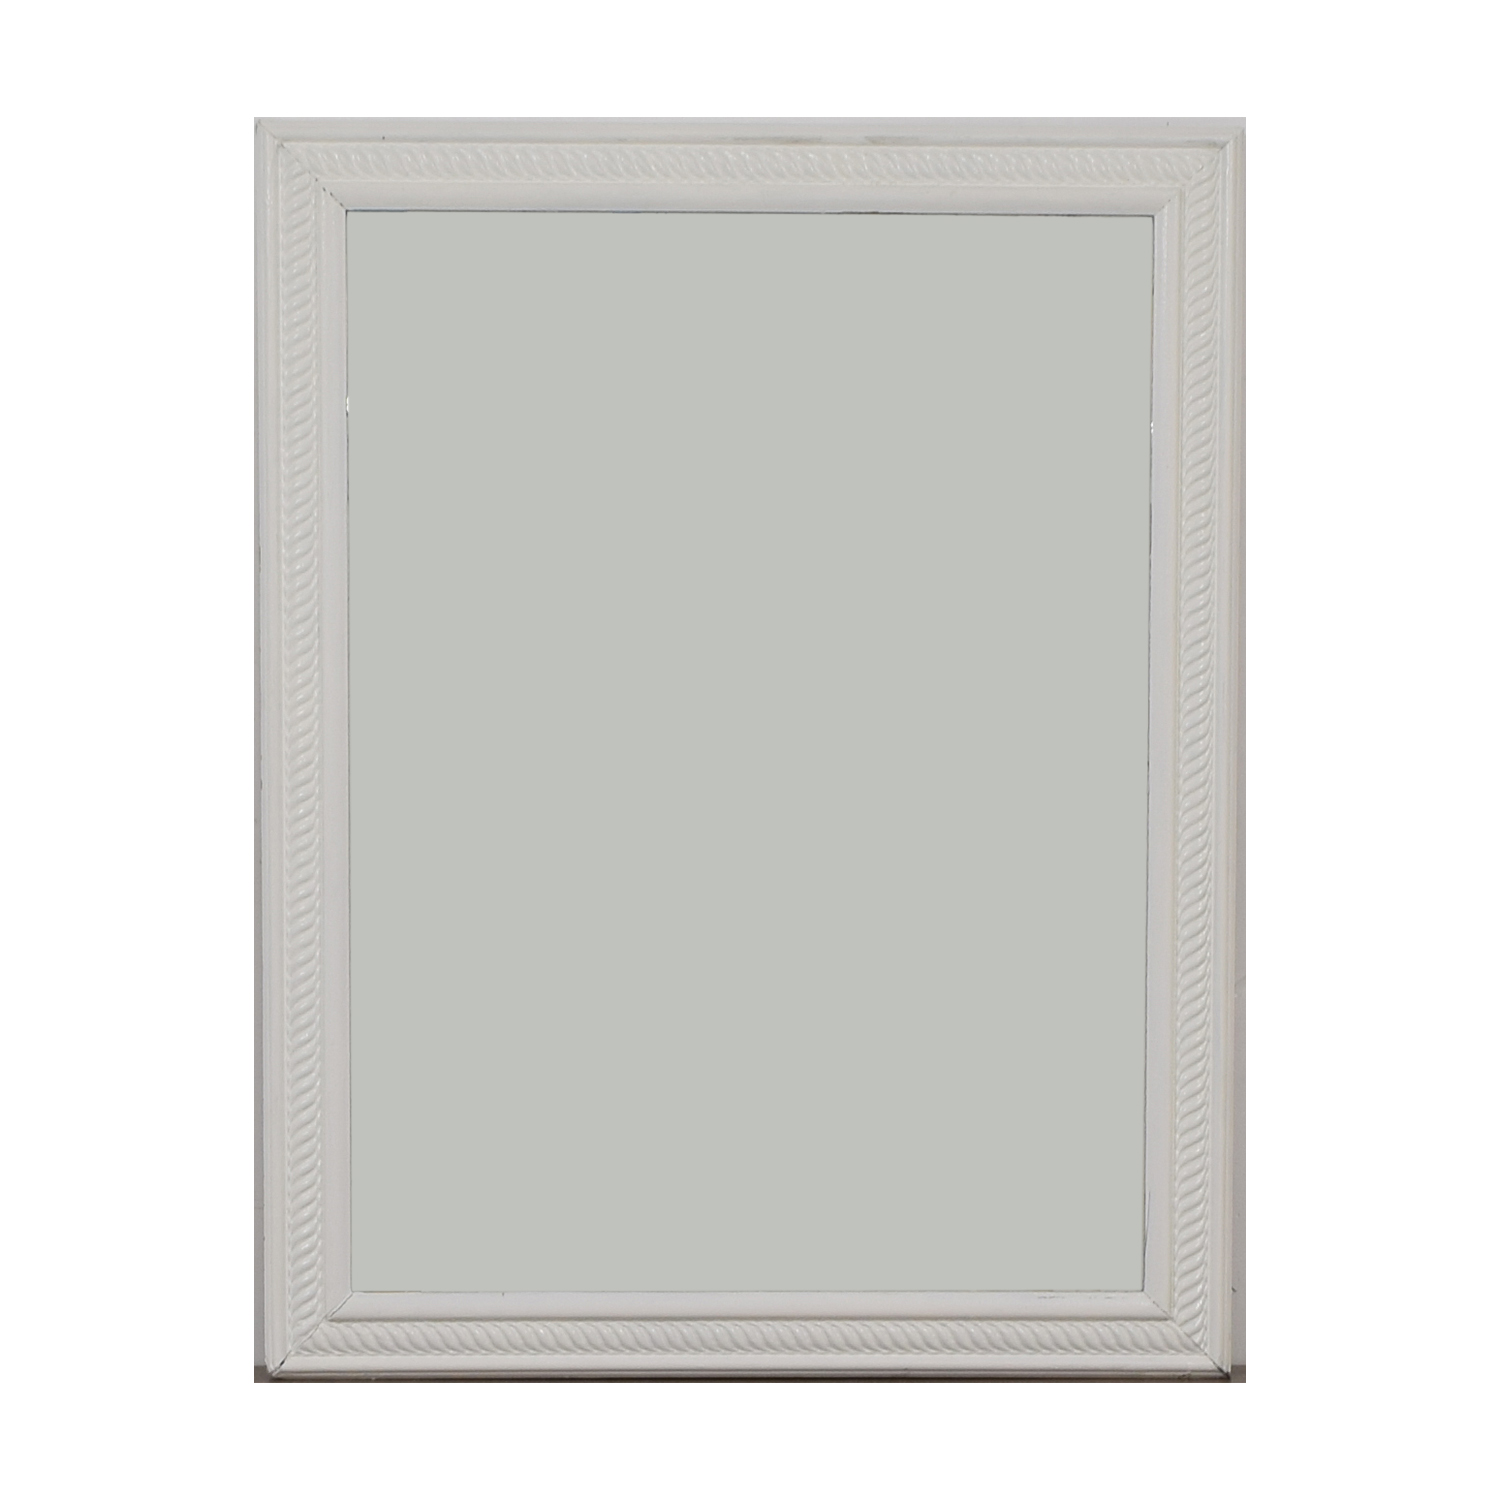 White Frames Wall Mirror dimensions